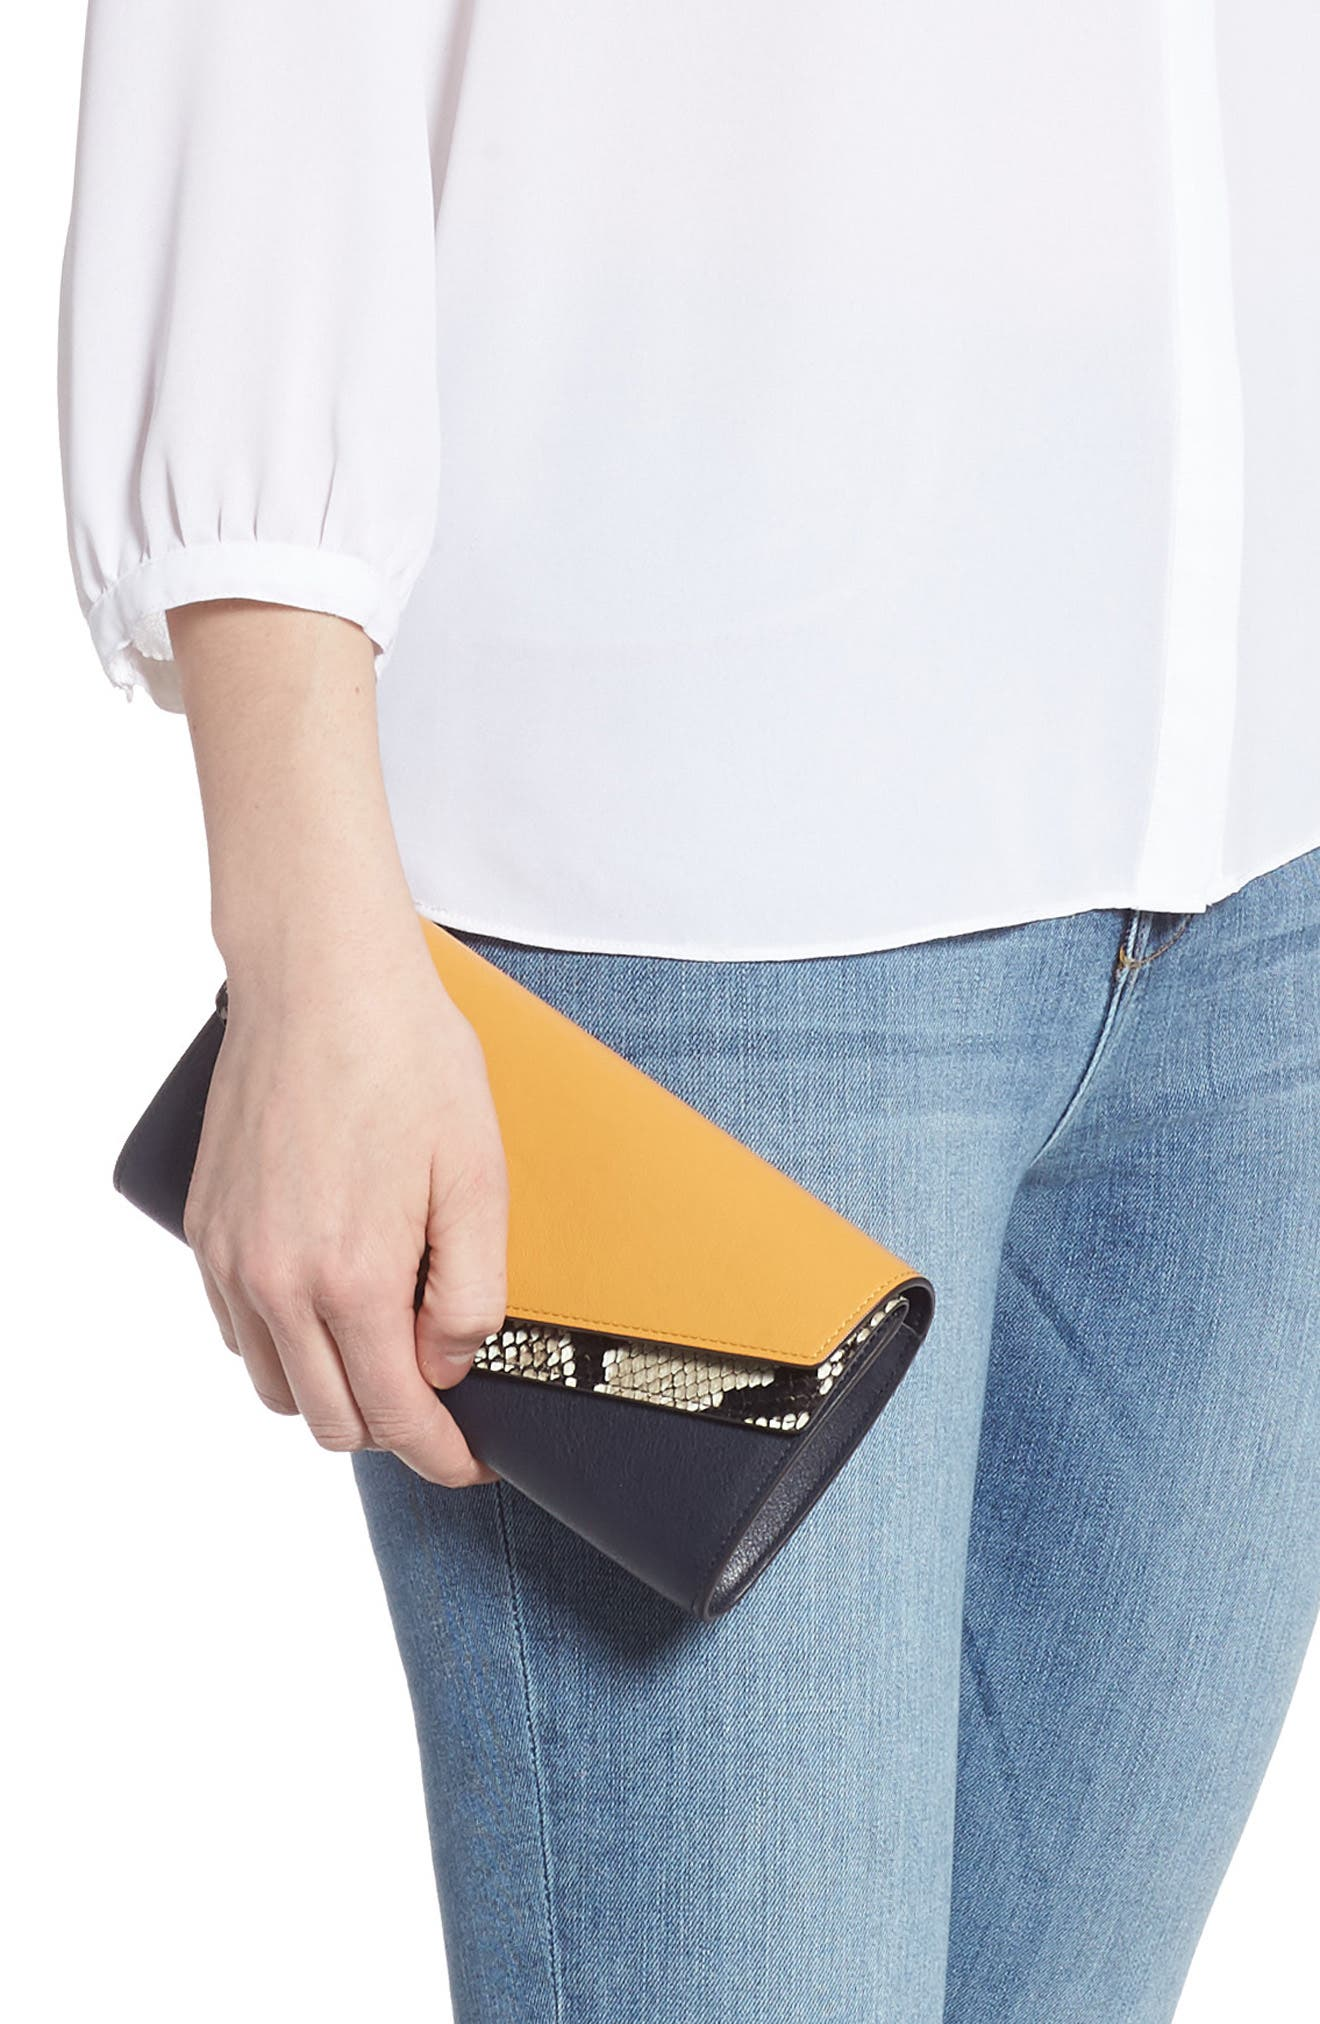 MULBERRY, Mulberrry Harlow Calfskin Leather & Genuine Snakeskin Wallet, Alternate thumbnail 2, color, MAIZE YELLOW/ MIDNIGHT